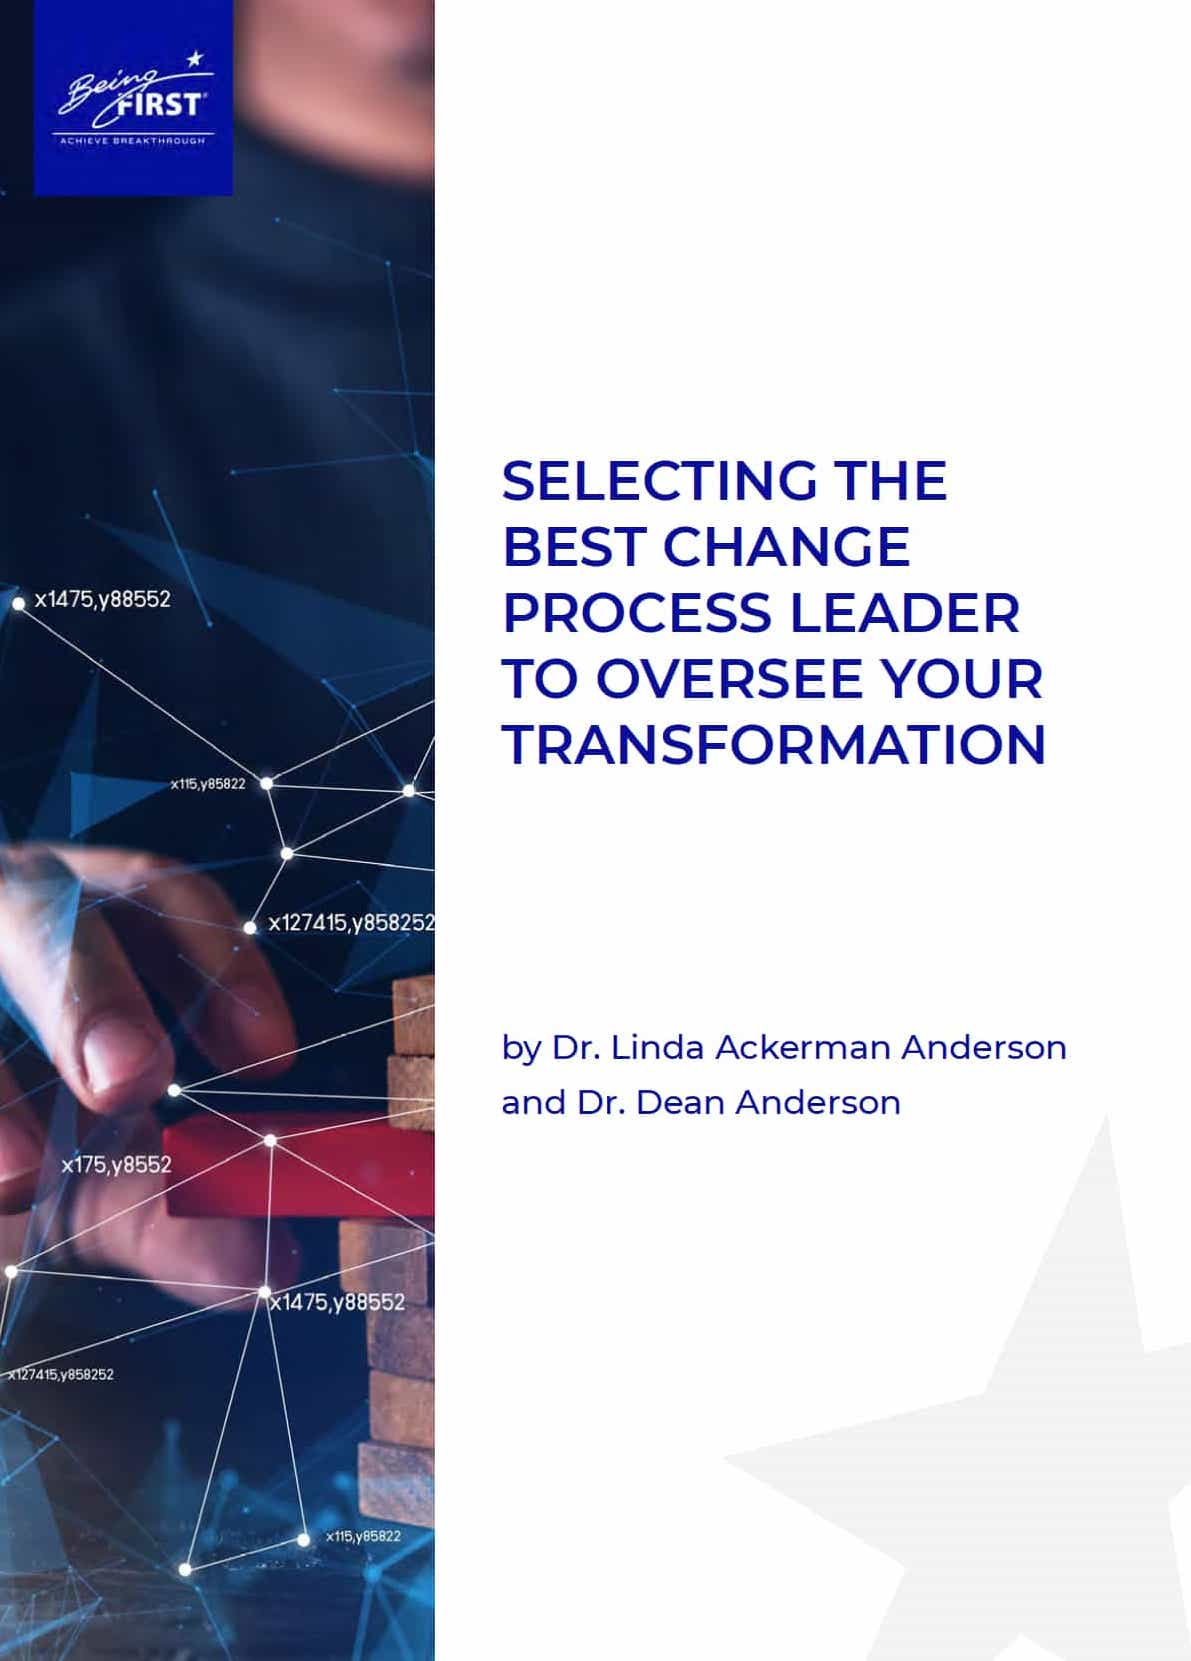 How to Select the Best Change Process Leader to Oversee Your Transformation